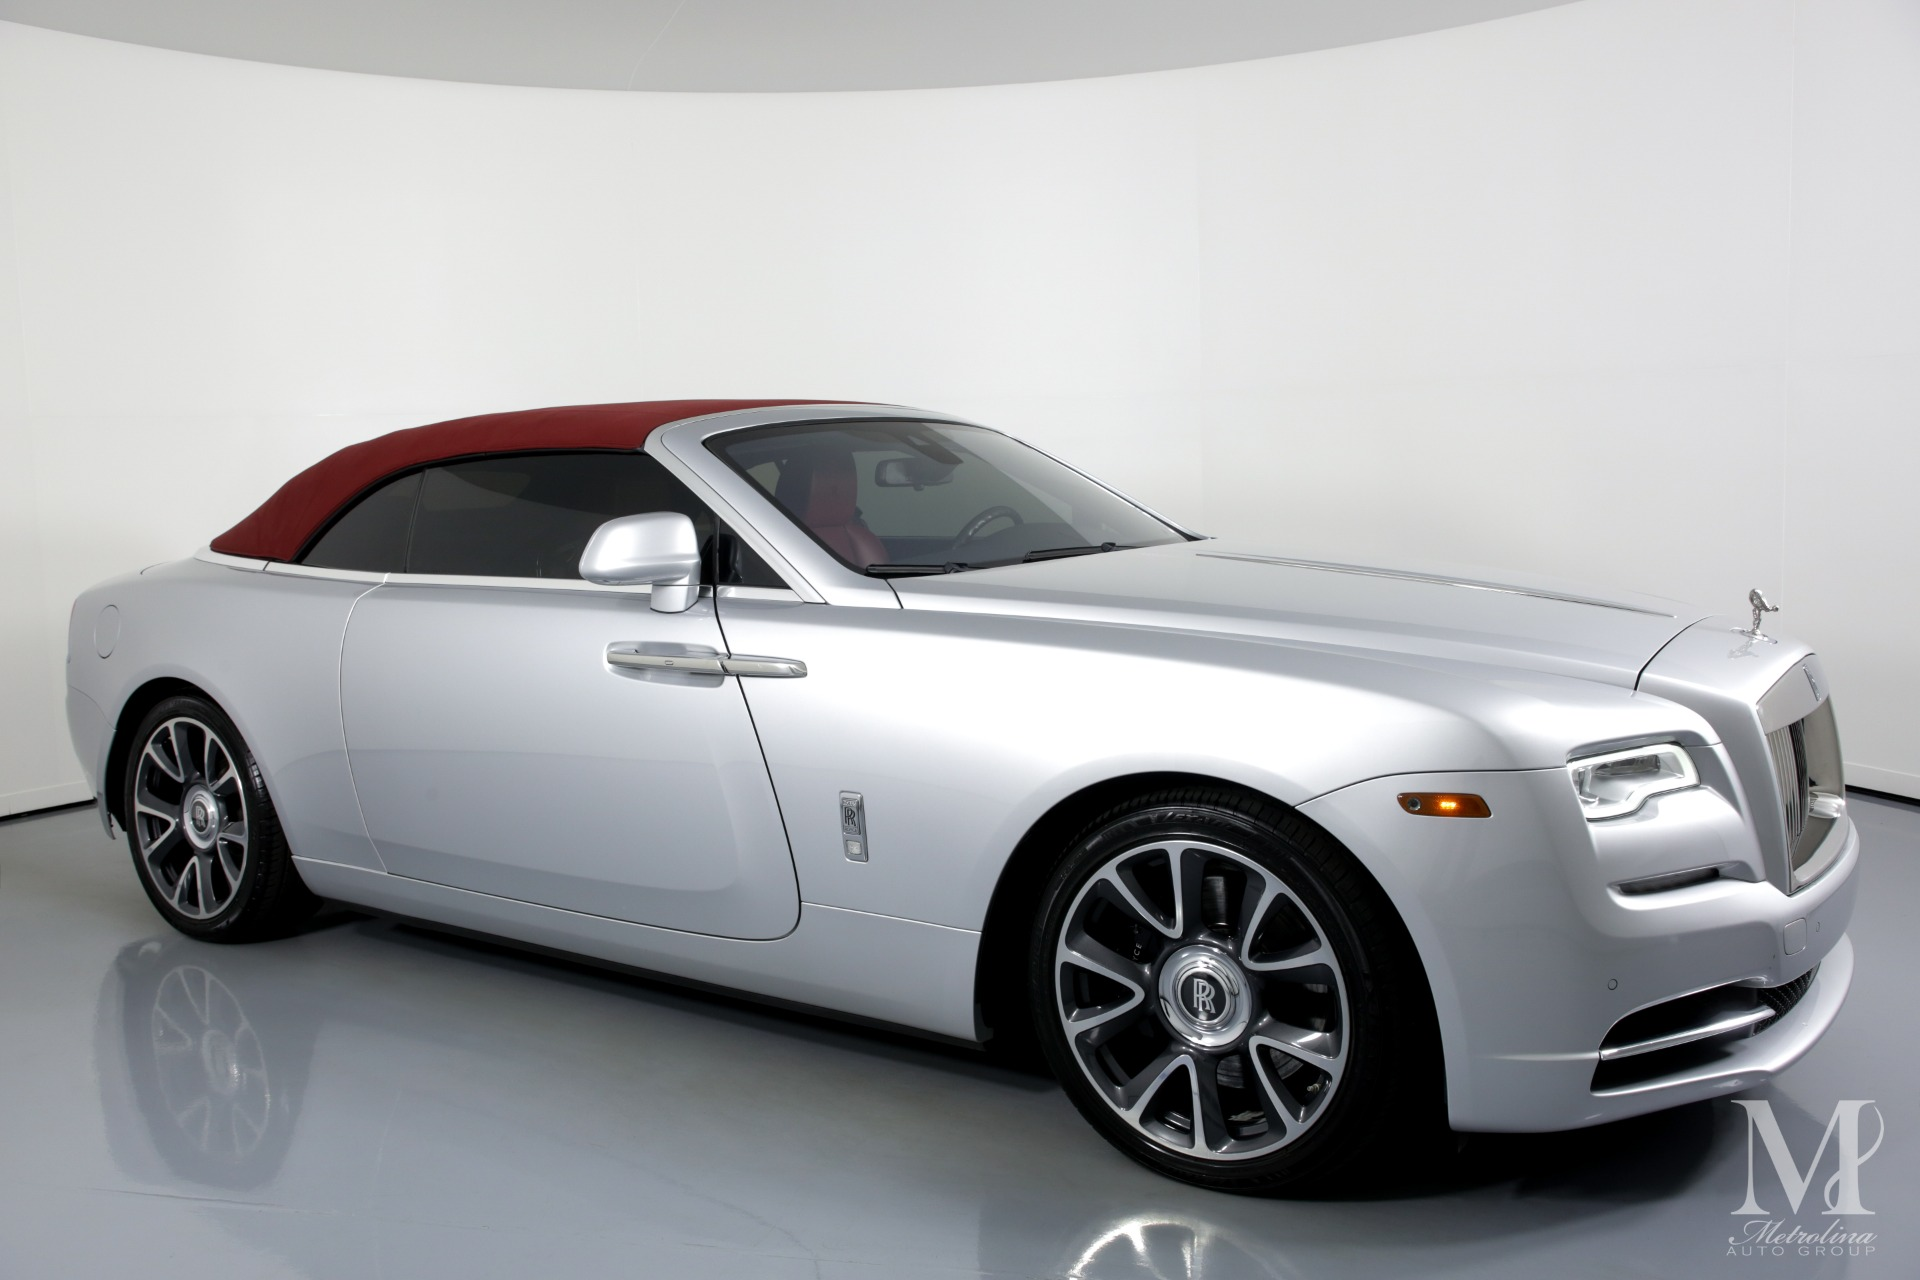 Used 2016 Rolls-Royce Dawn Base 2dr Convertible for sale $227,456 at Metrolina Auto Group in Charlotte NC 28217 - 2